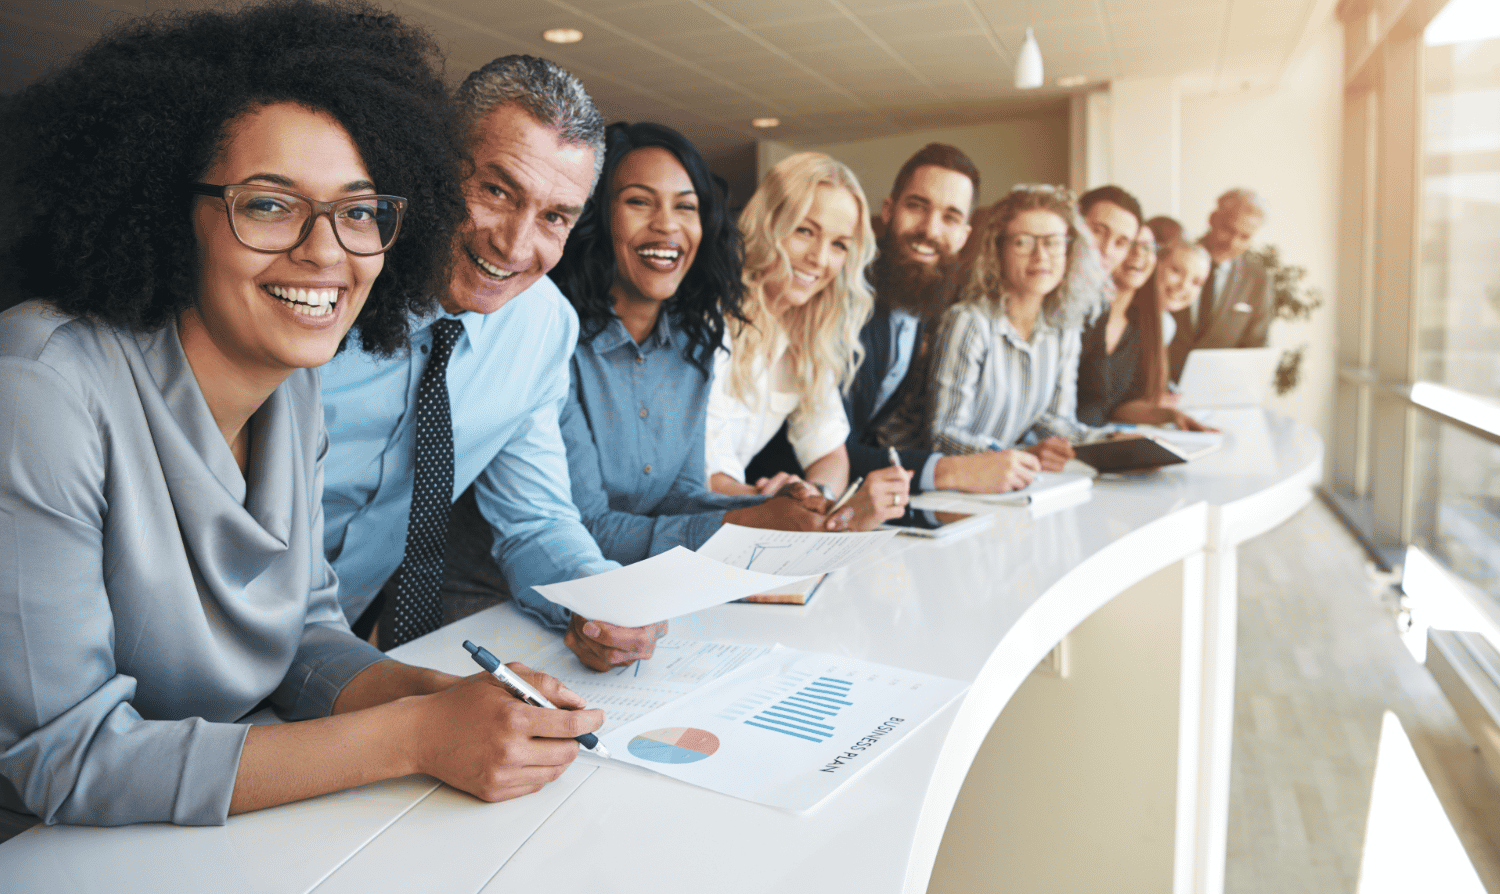 Connecting with Employees at a Time of Unprecedented Change: Preparation, Adaptation and Empathy, by Scott Frisch, Executive Vice President & Chief Operating Officer, AARP